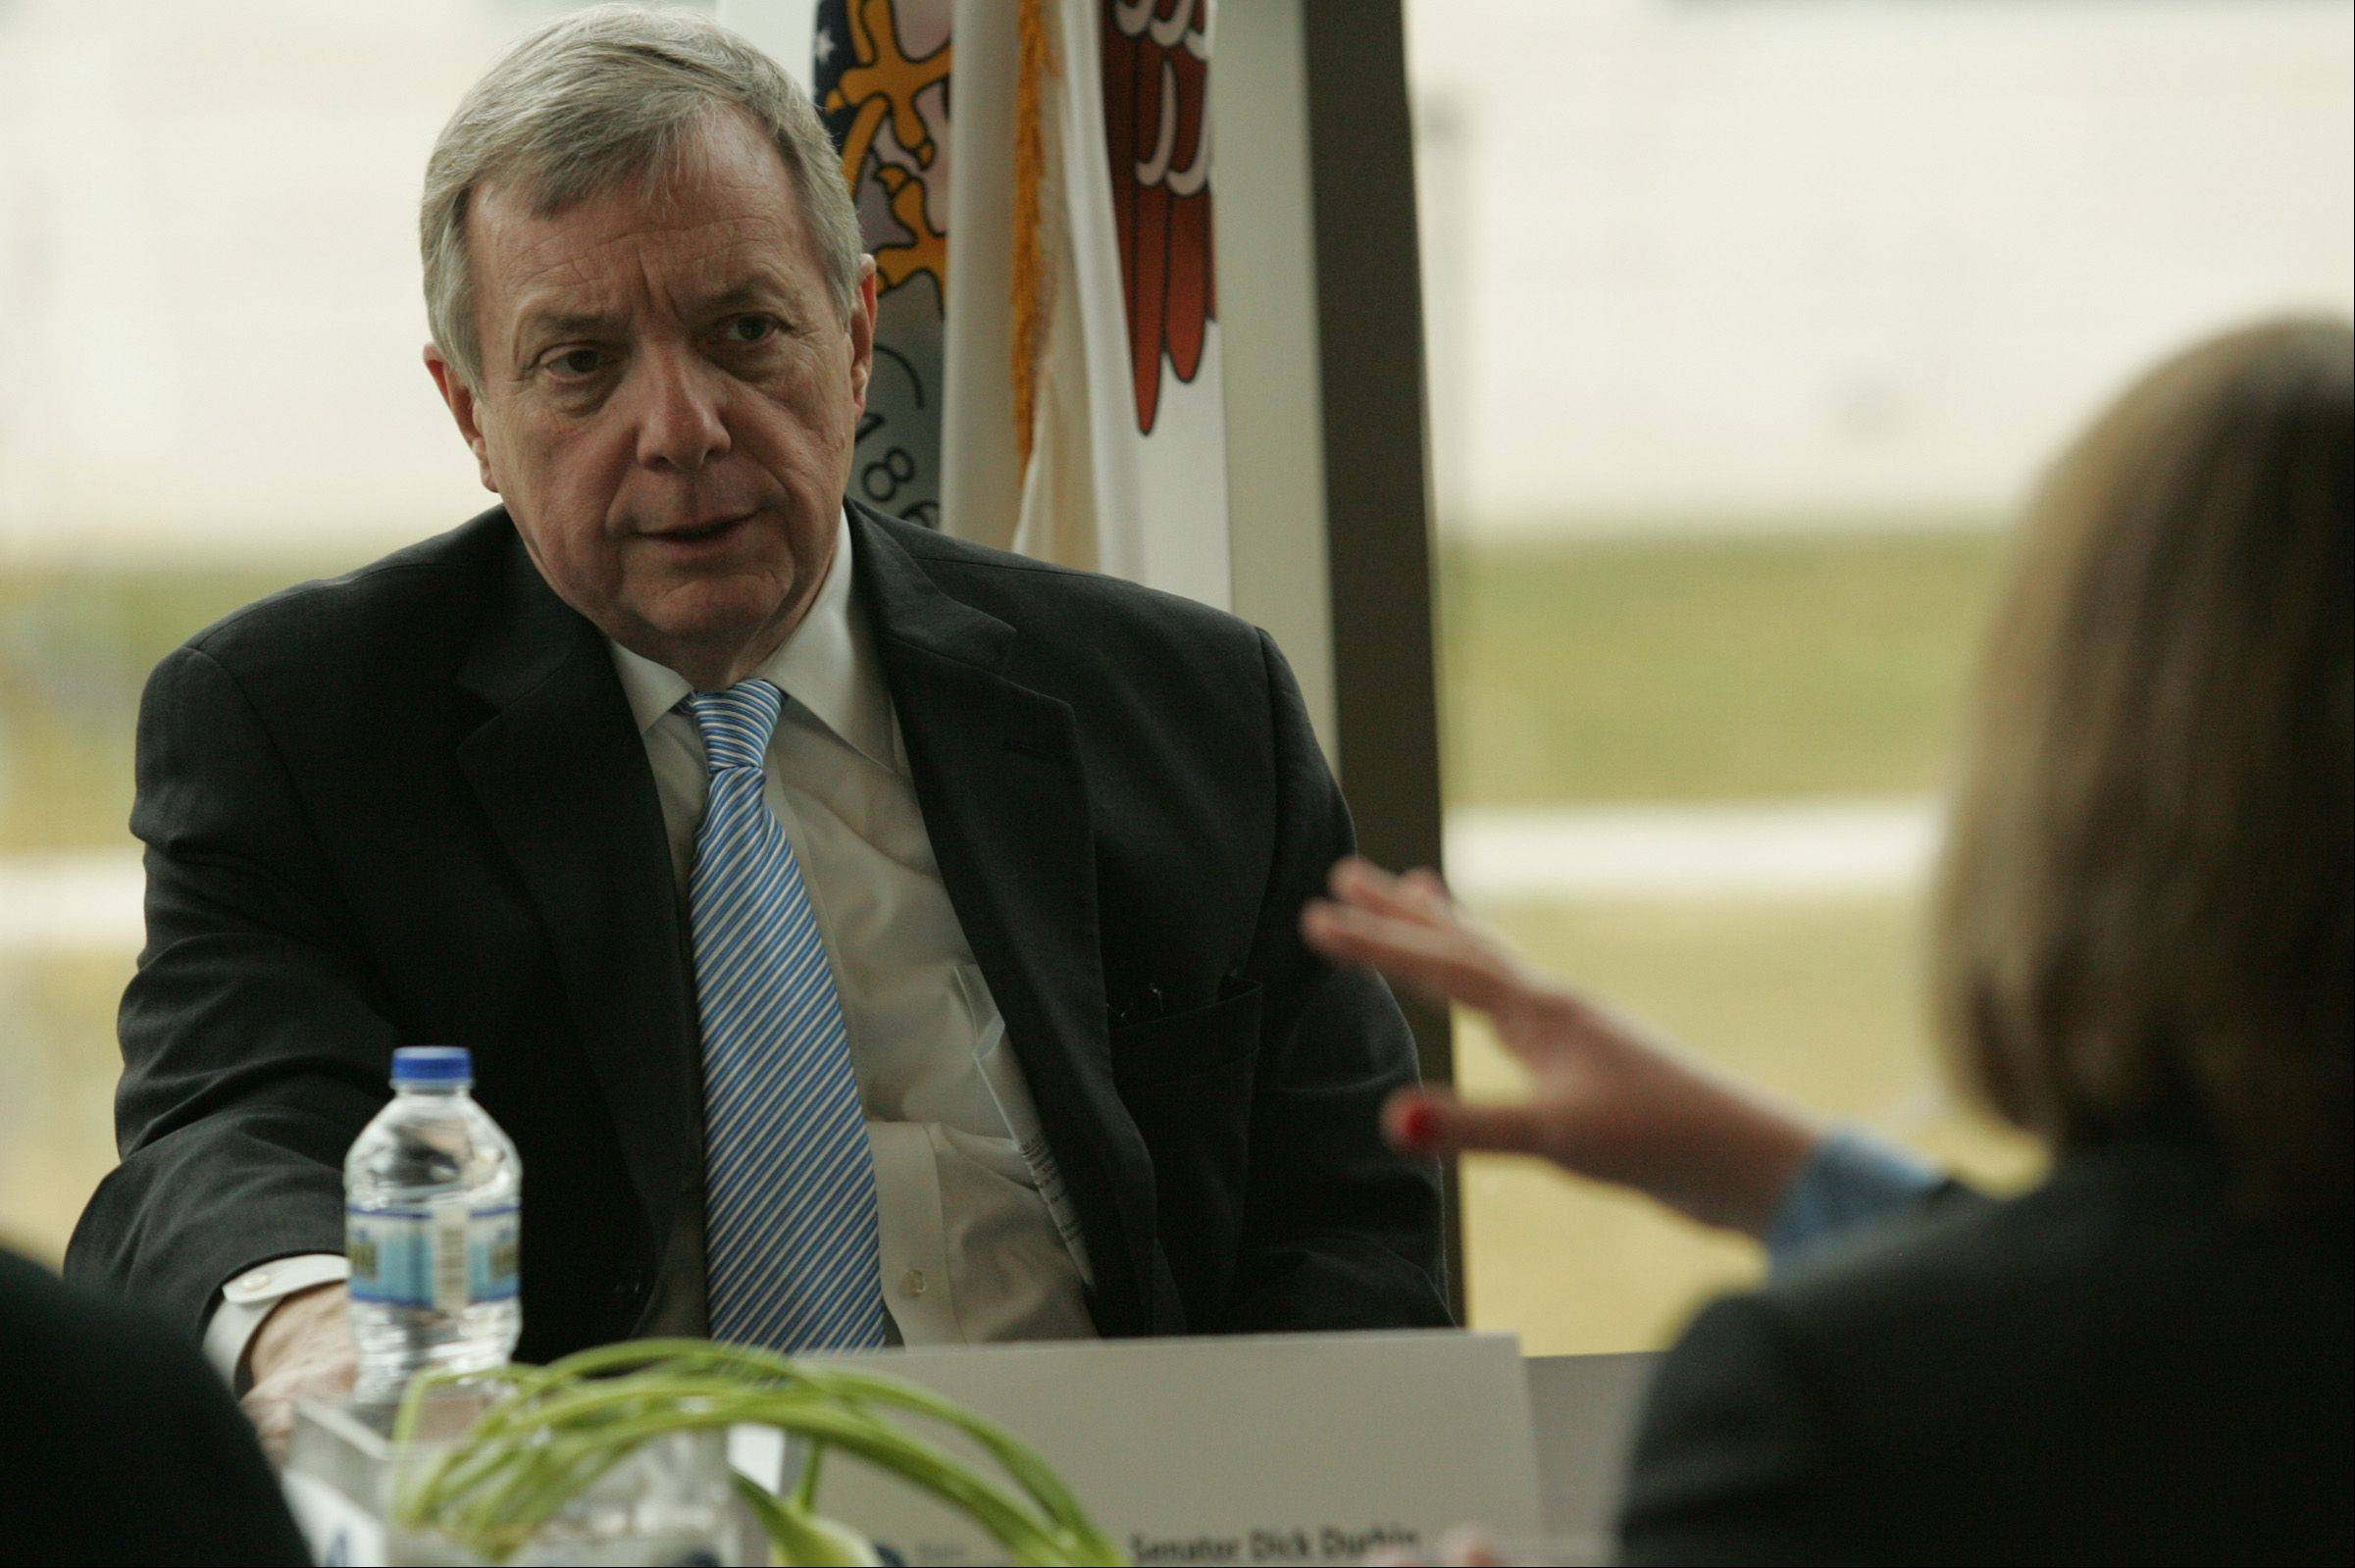 Sen. Dick Durbin listens to Kim Wagner, managing director of student financial services at ECC, as she describes the school's policy of helping students deal with loans and student debt.